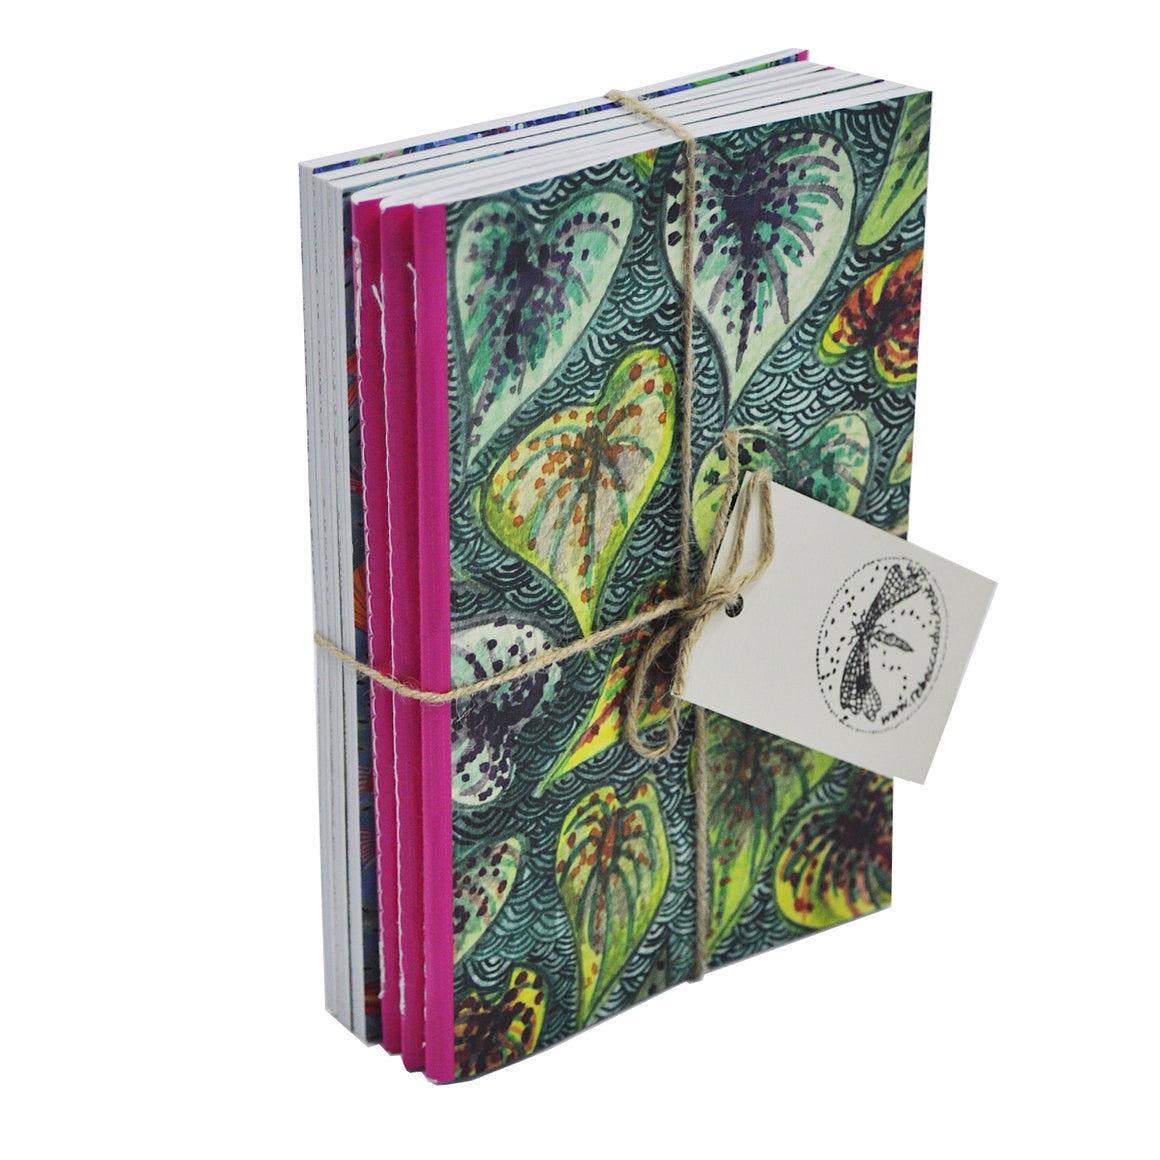 Rebecca's Sketchbooks (Set of 6)